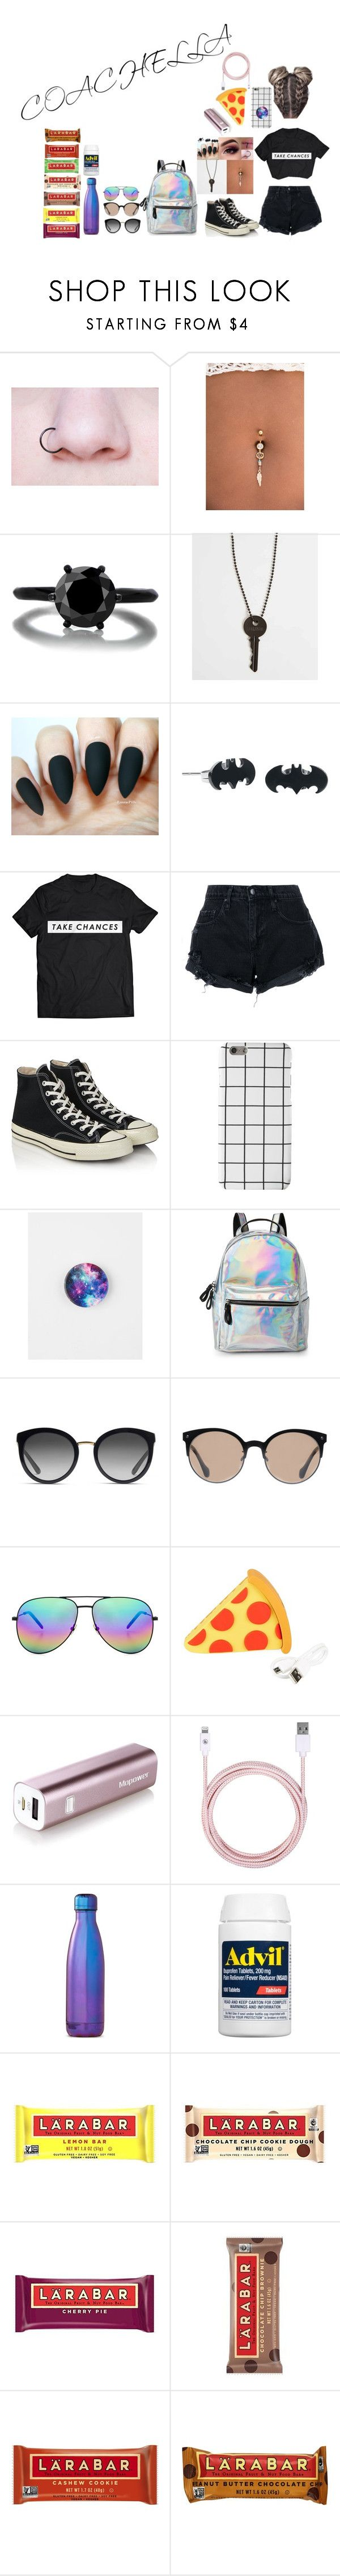 """Coachella #2"" by carry-senpai ❤ liked on Polyvore featuring The Giving Keys, Nobody Denim, Converse, PopSockets, IMoshion, Dolce&Gabbana, Balenciaga, Yves Saint Laurent, Wattzup and Sony"